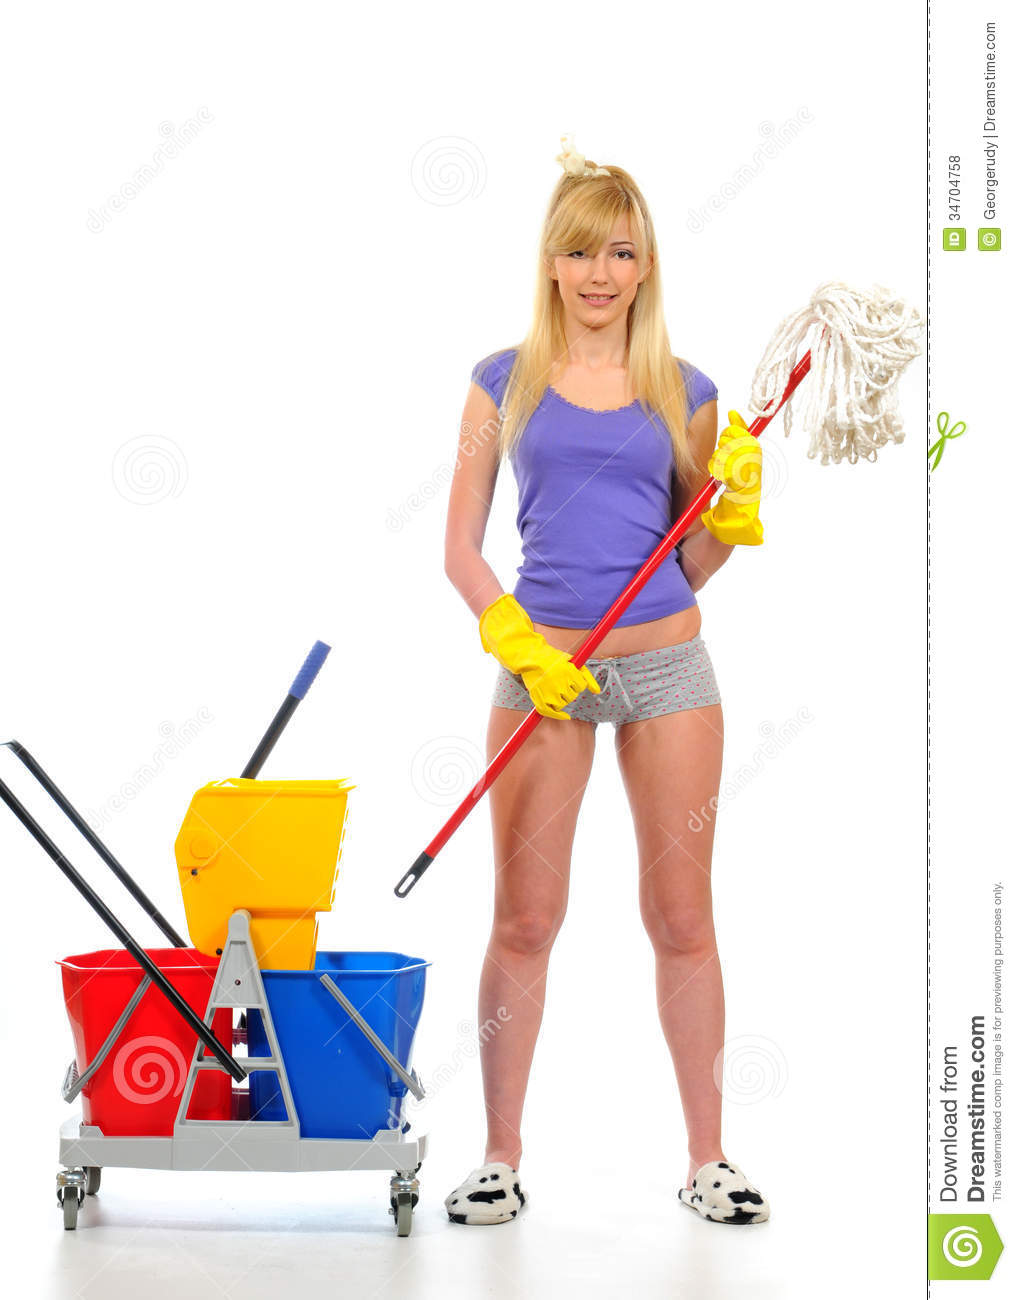 Cleaning Royalty Free Stock Photos Image 34704758